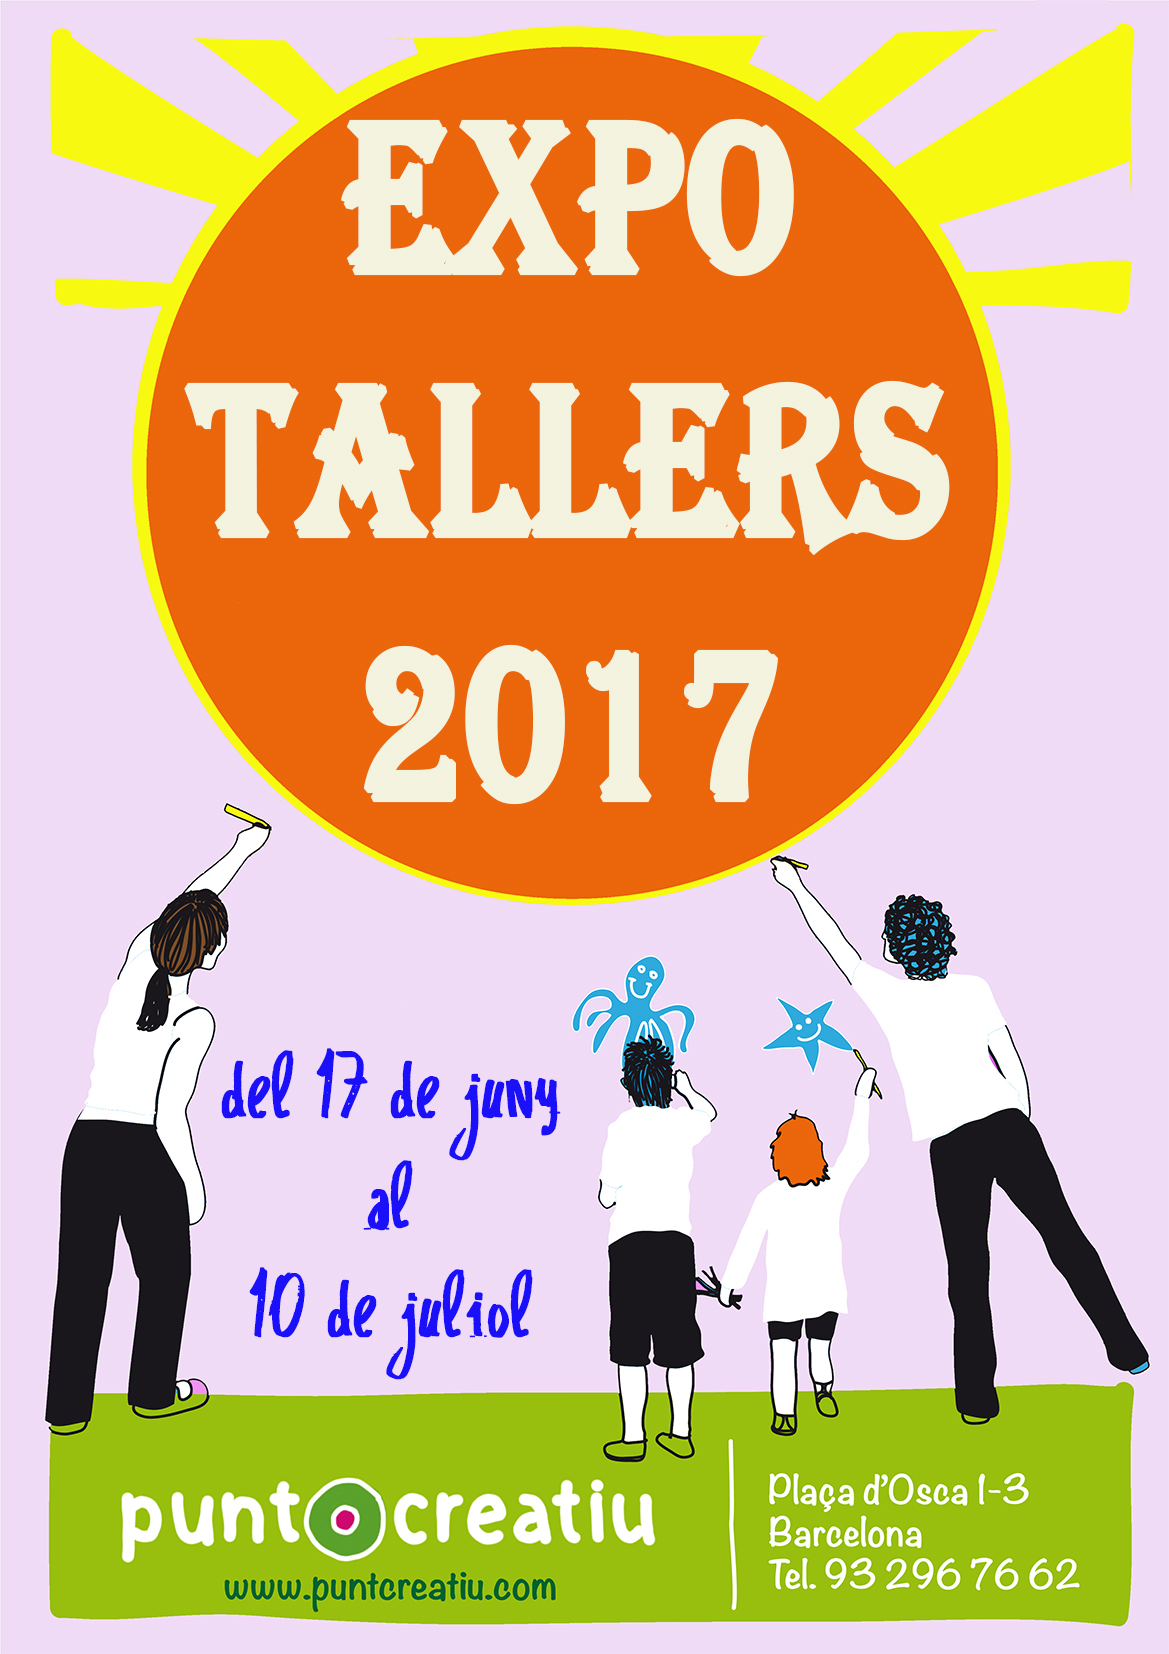 EXPO TALLERS 2017